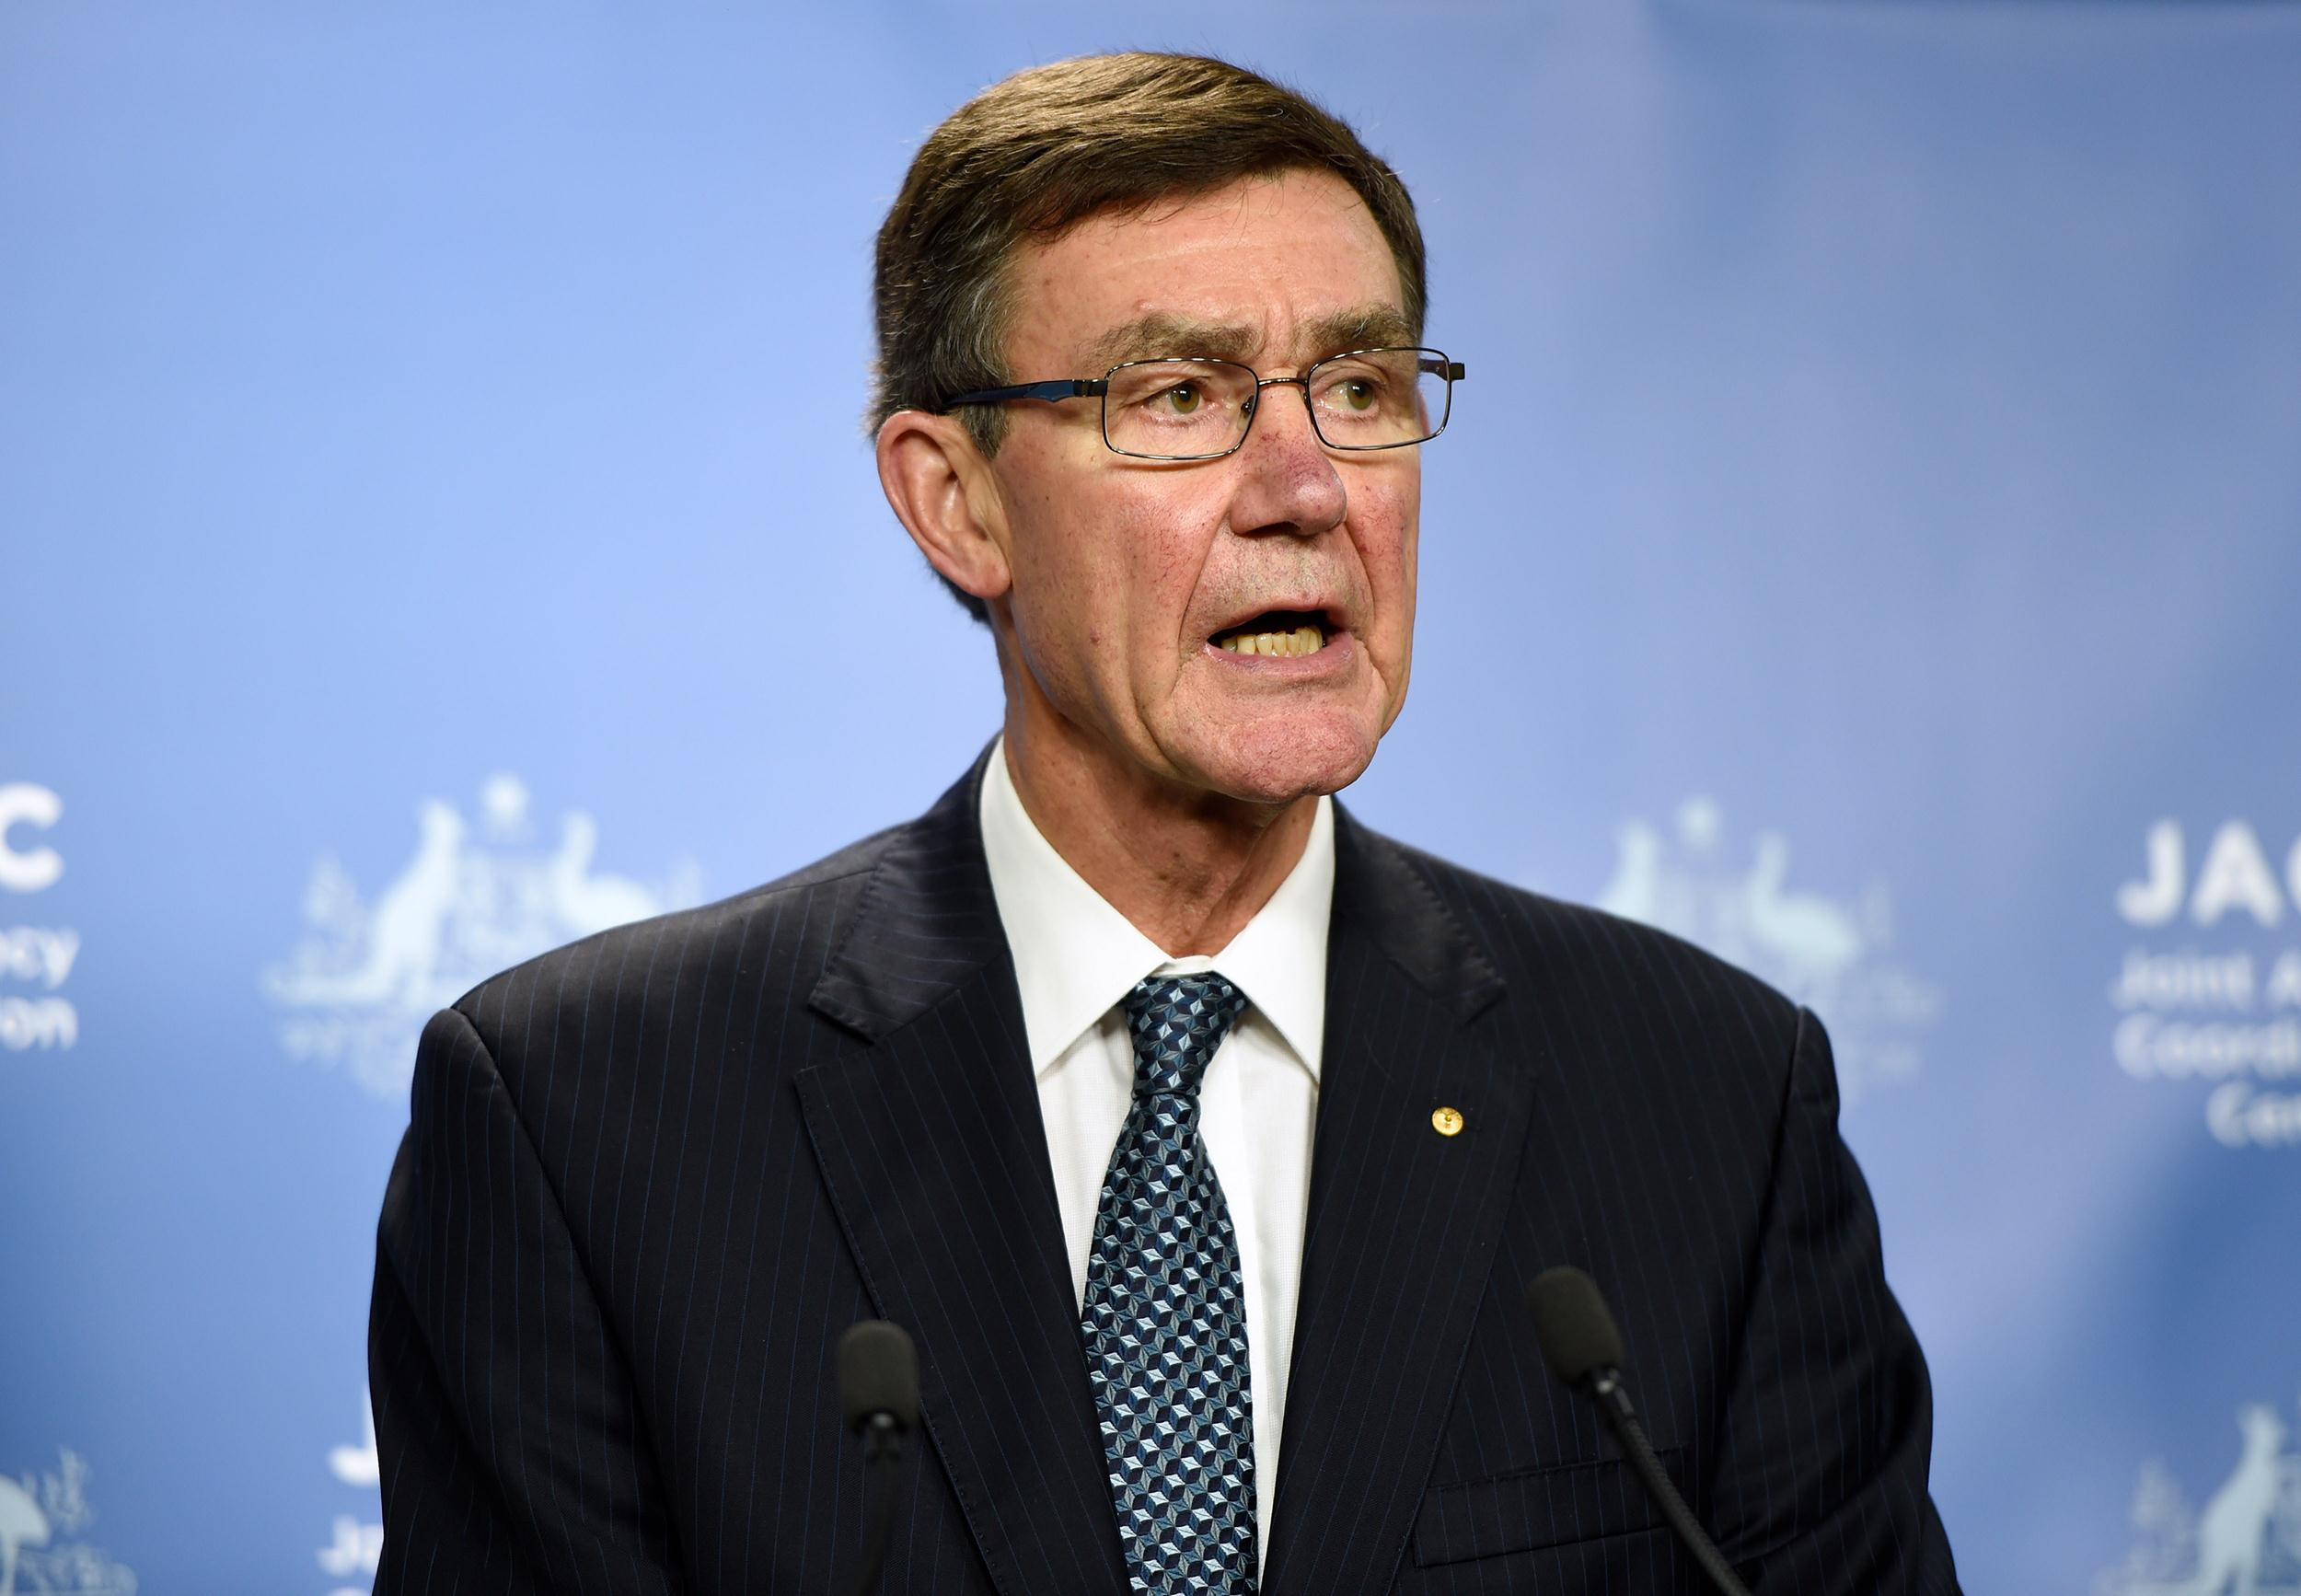 Image: Angus Houston, head of the Joint Agency Coordination Centre leading the search for missing Malaysia Airlines flight MH370 speaks to the media at Dumas House in Perth on April 14.